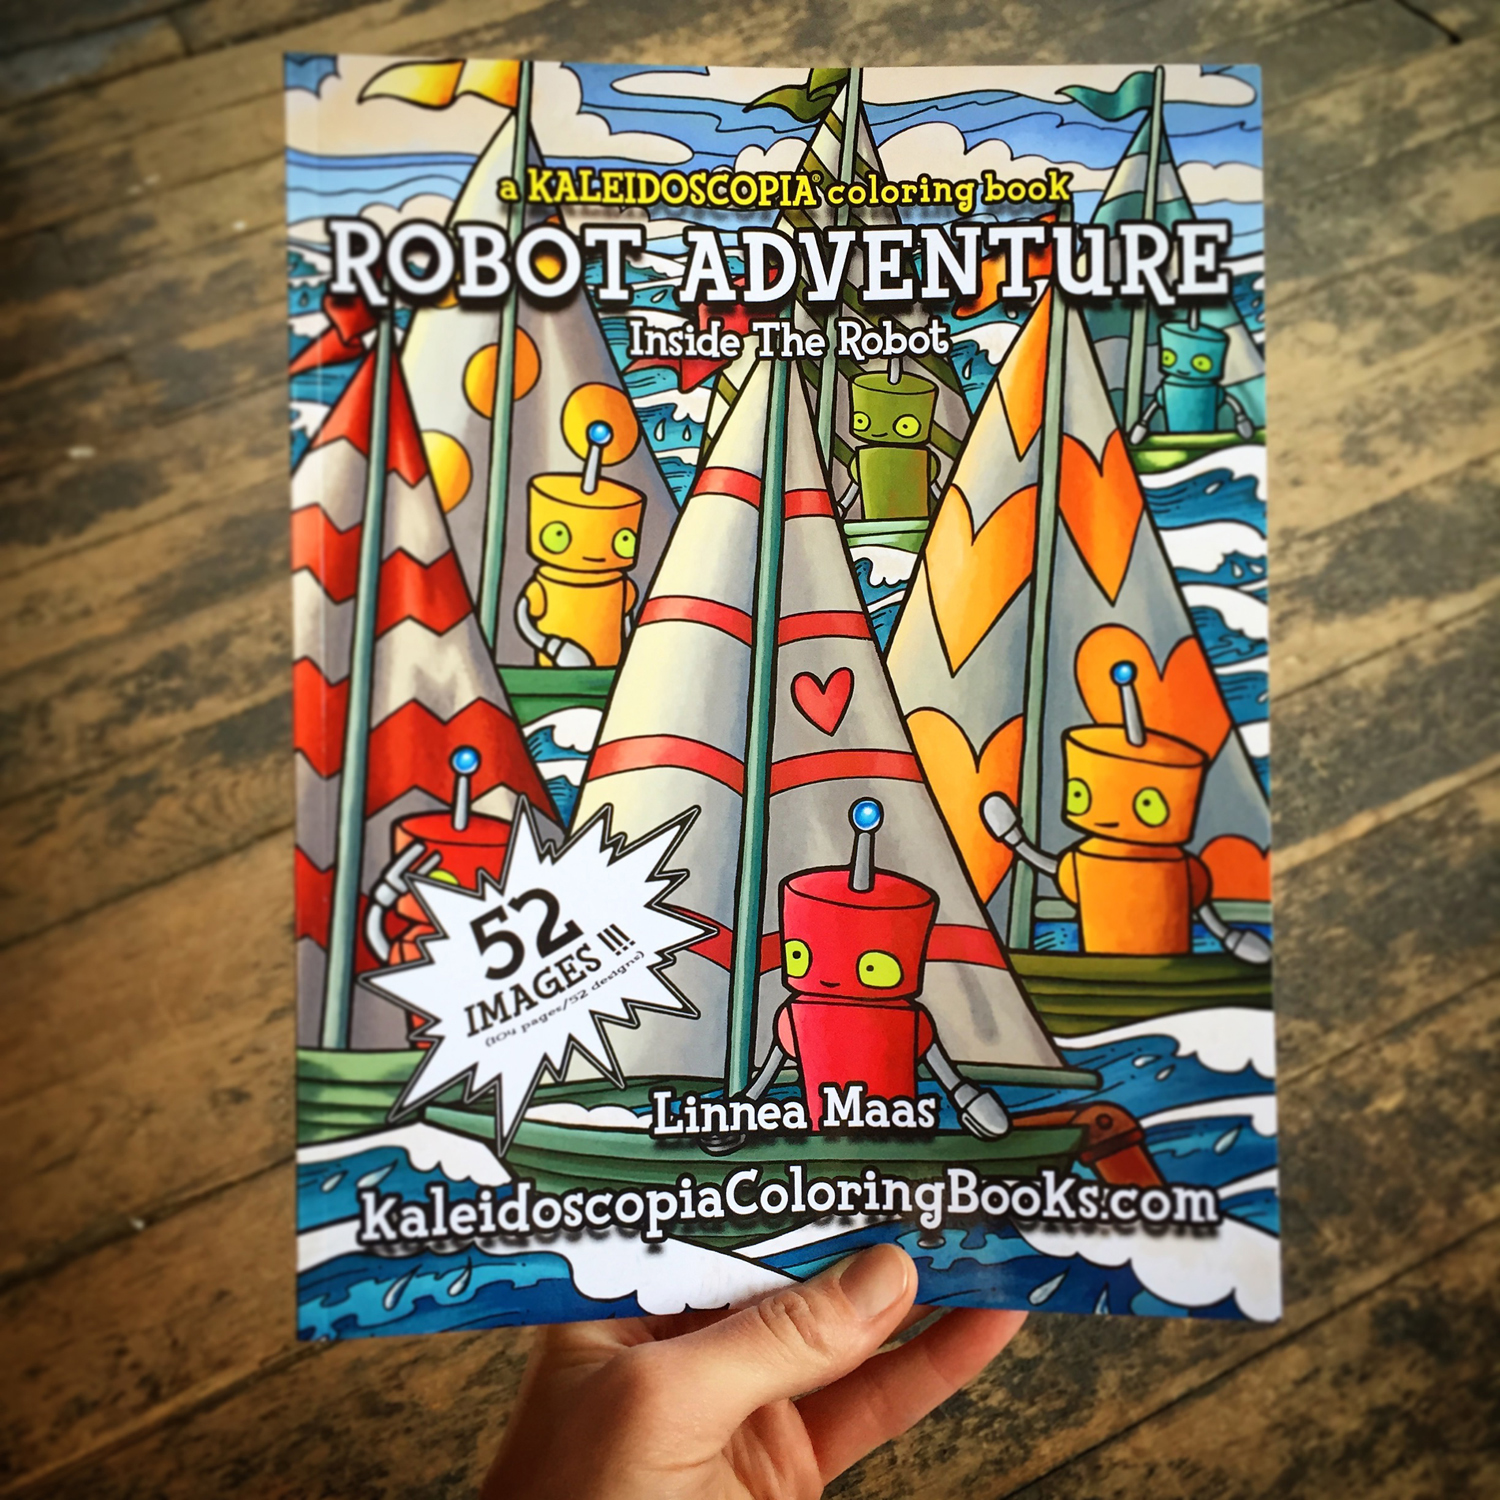 Hand holding a copy of Robot Adventure: Inside The Robot colorin